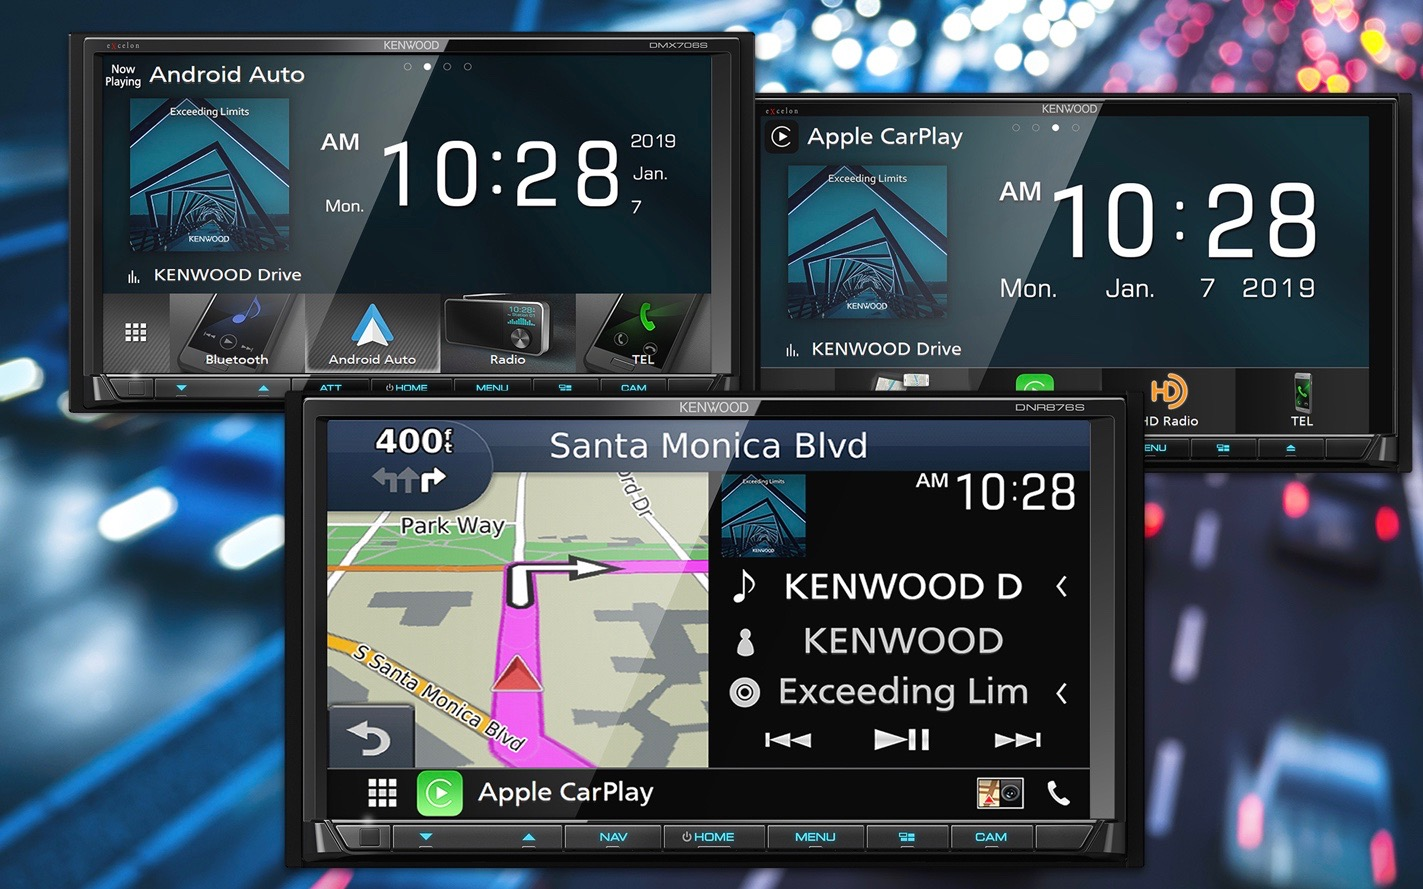 Kenwood announces 7 new CarPlay receivers starting at $600, including new wireless options